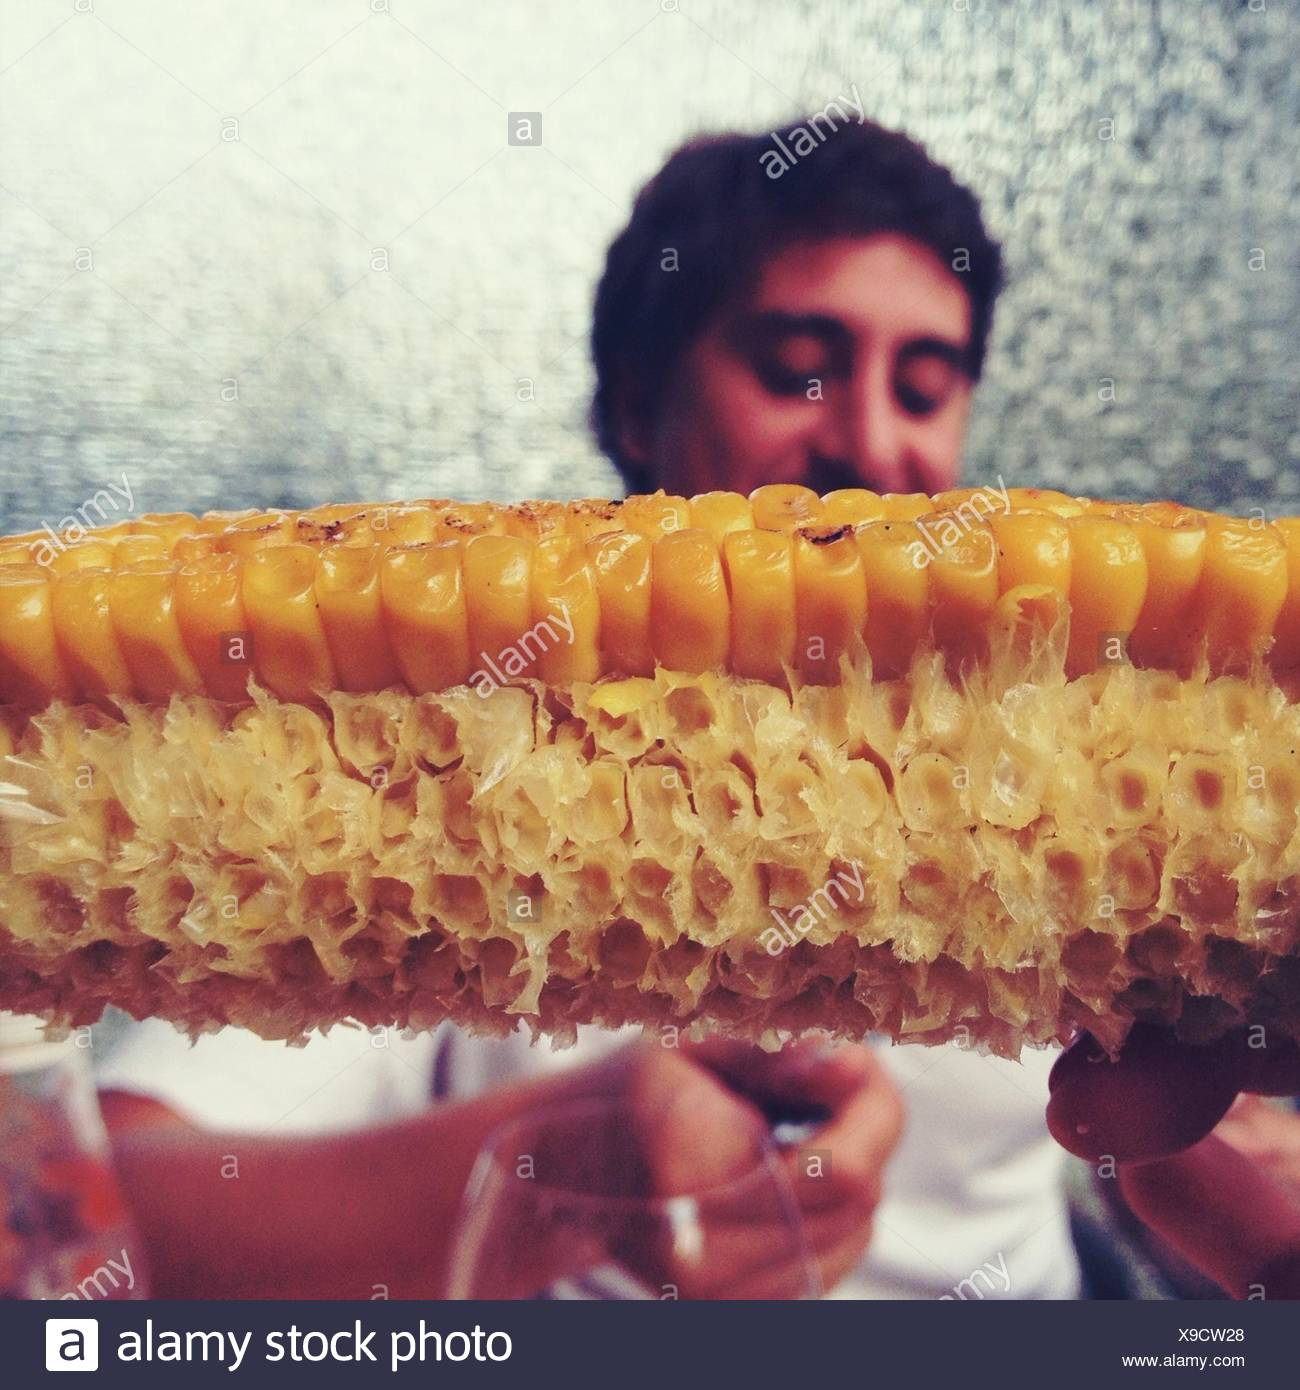 Detail Of Eaten Corn With Man In Background - Stock Image